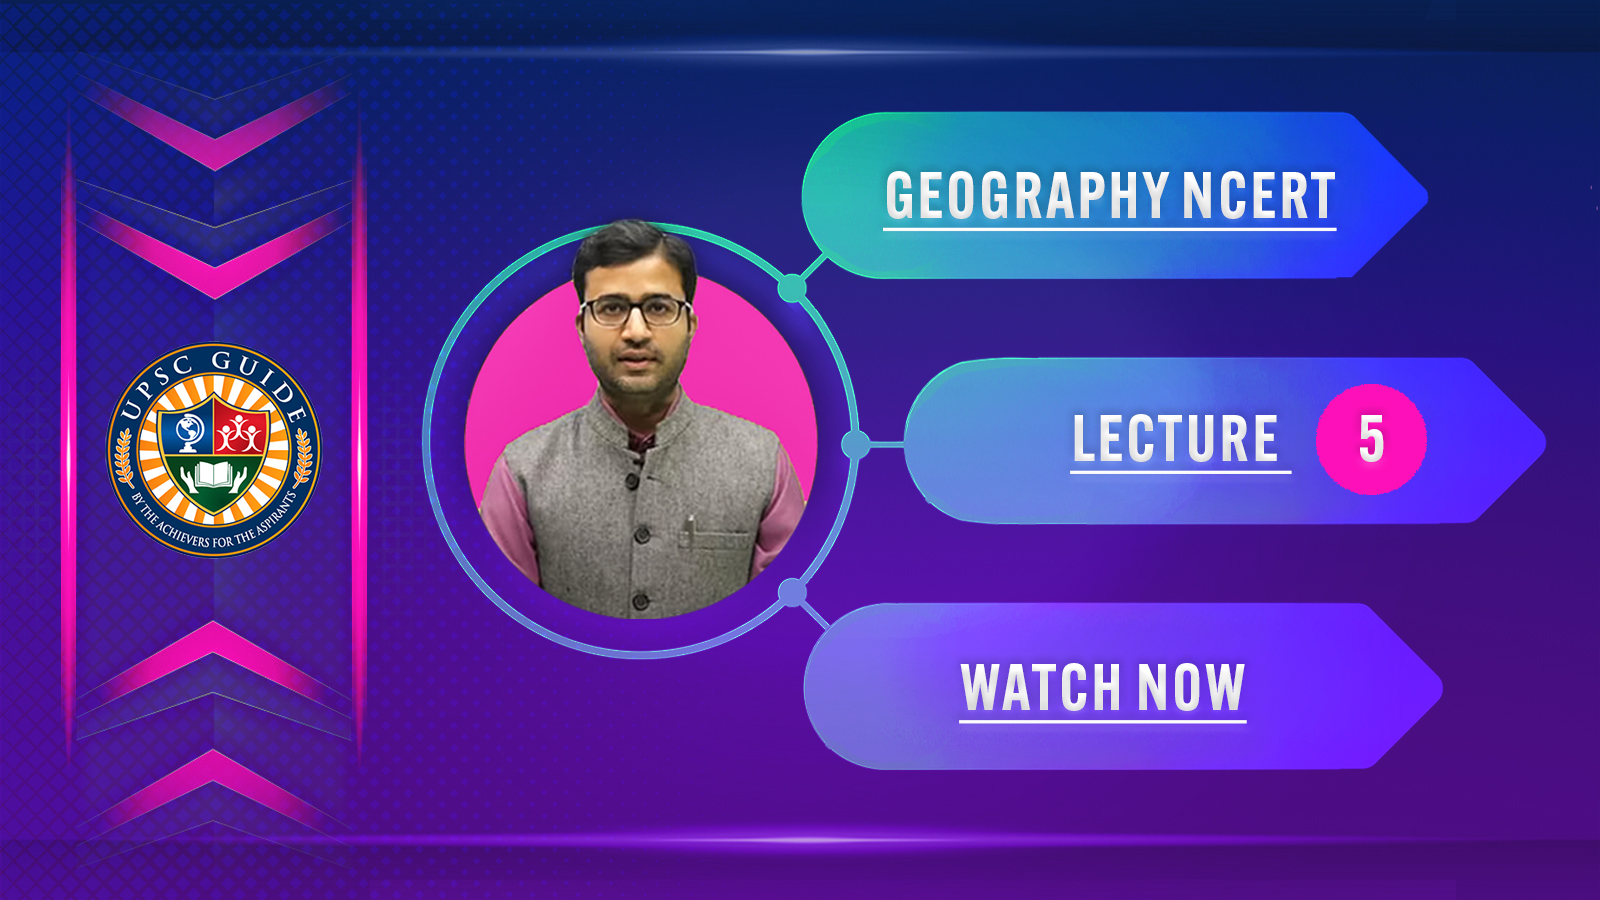 Geography NCERT || Lect 5 || BY Amit Garg Sir